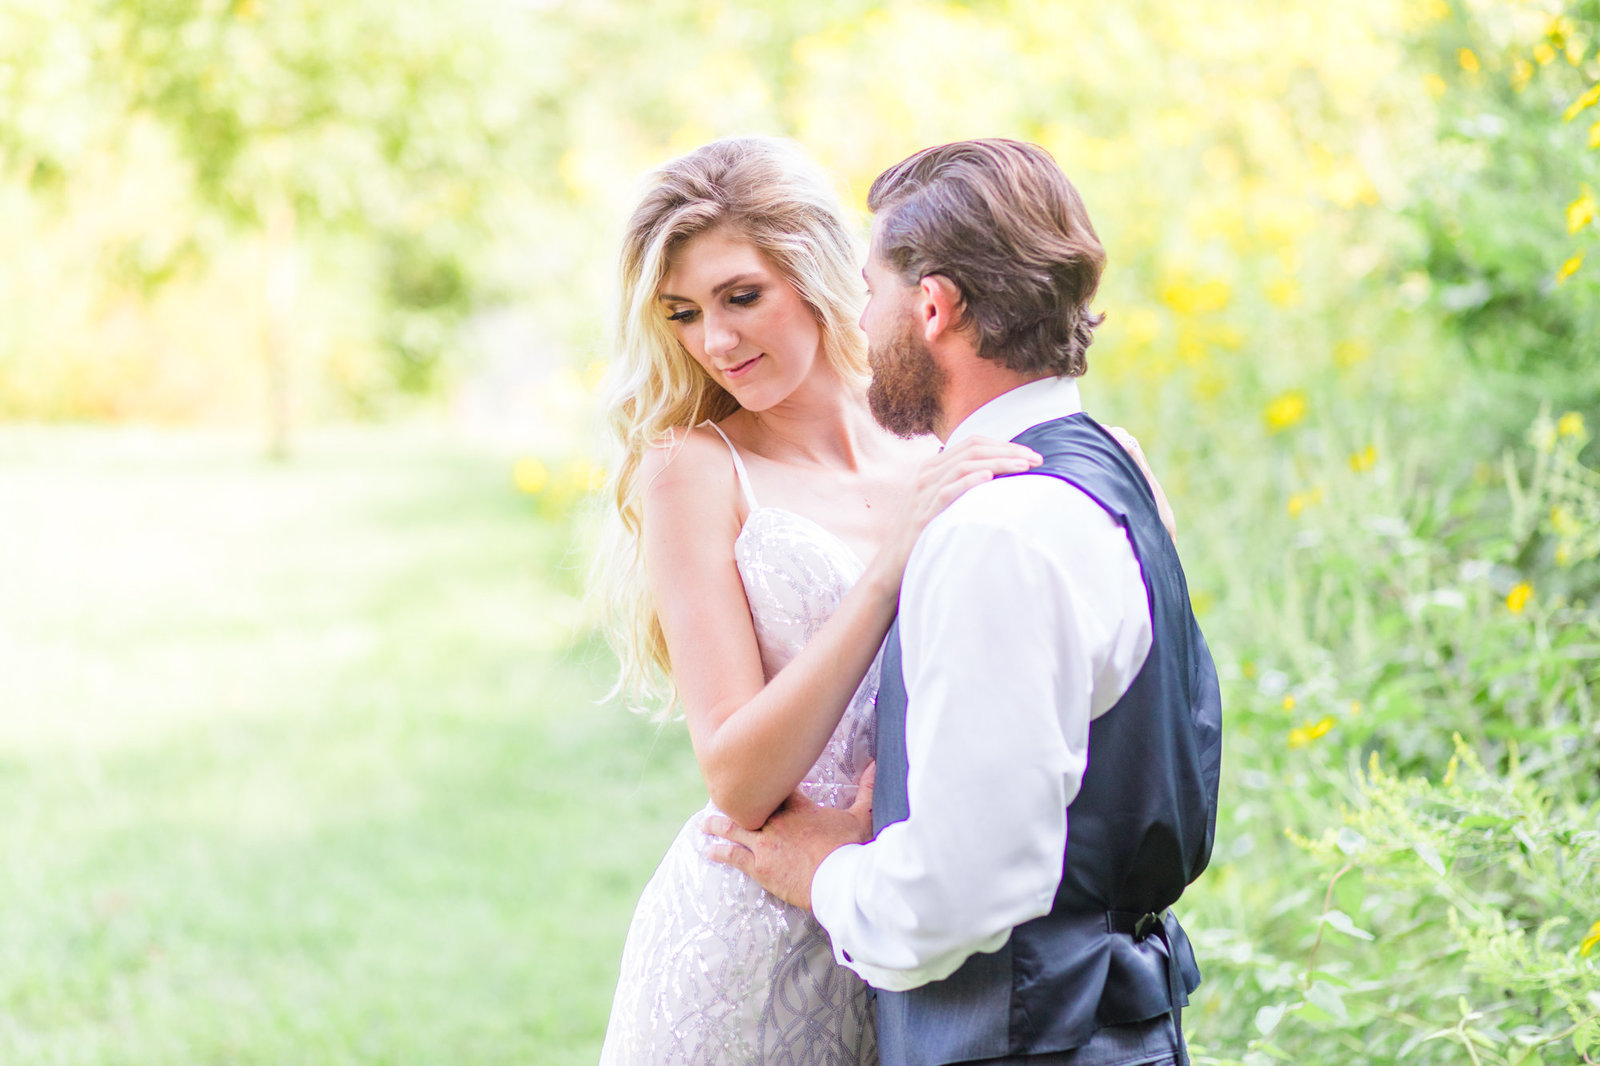 st-louis-wedding-photographer-belleville-alton-romantic-spring-outdoor-65